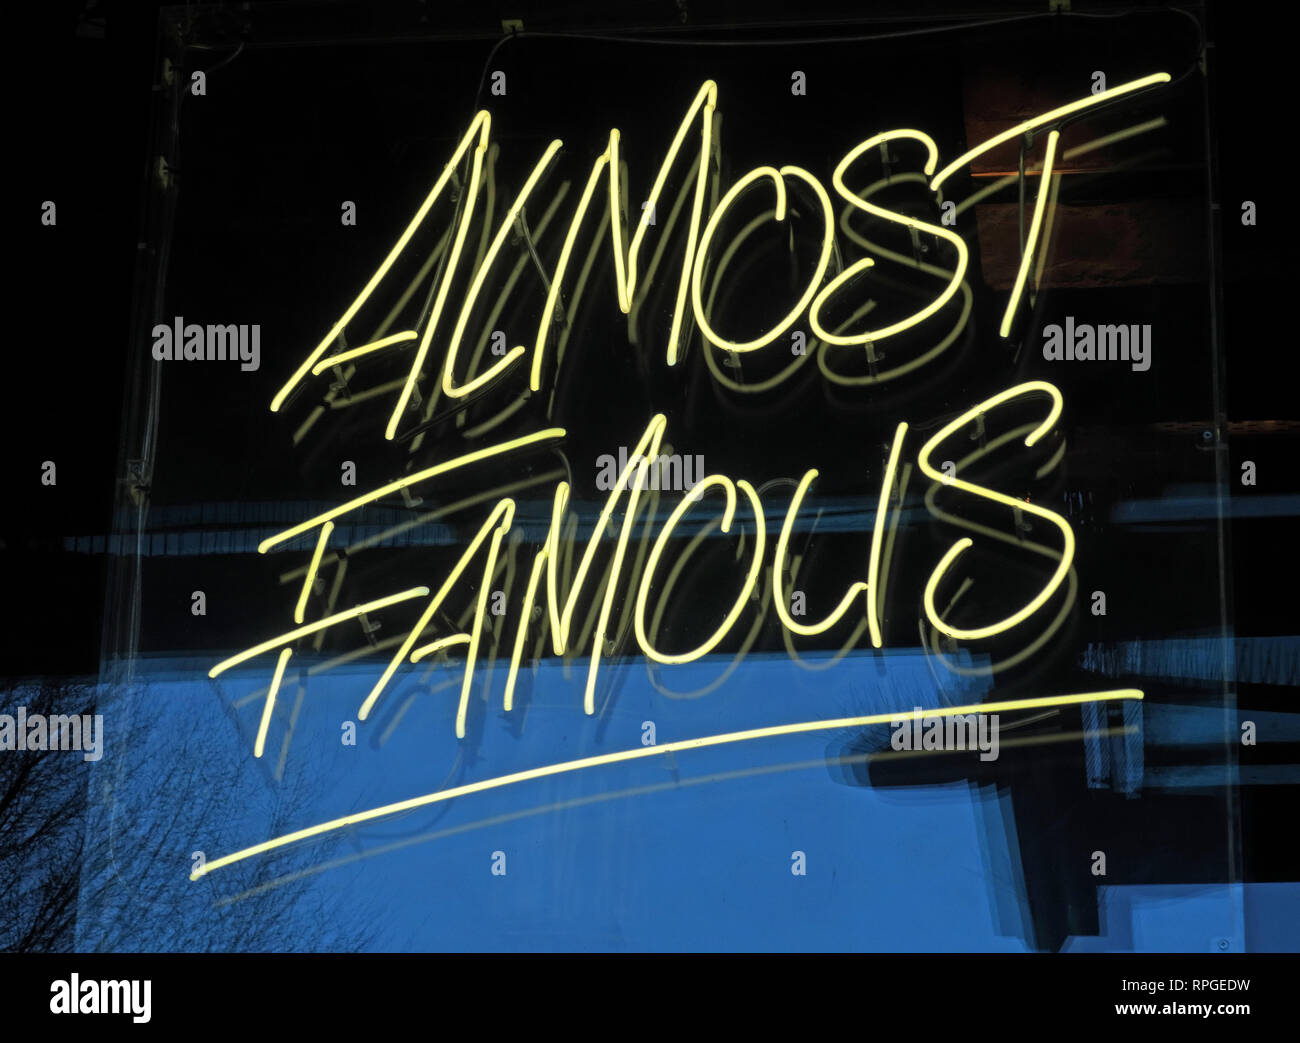 Almost Famous burger chain,restaurant,Great Northern,Manchester, North West England, UK - Stock Image